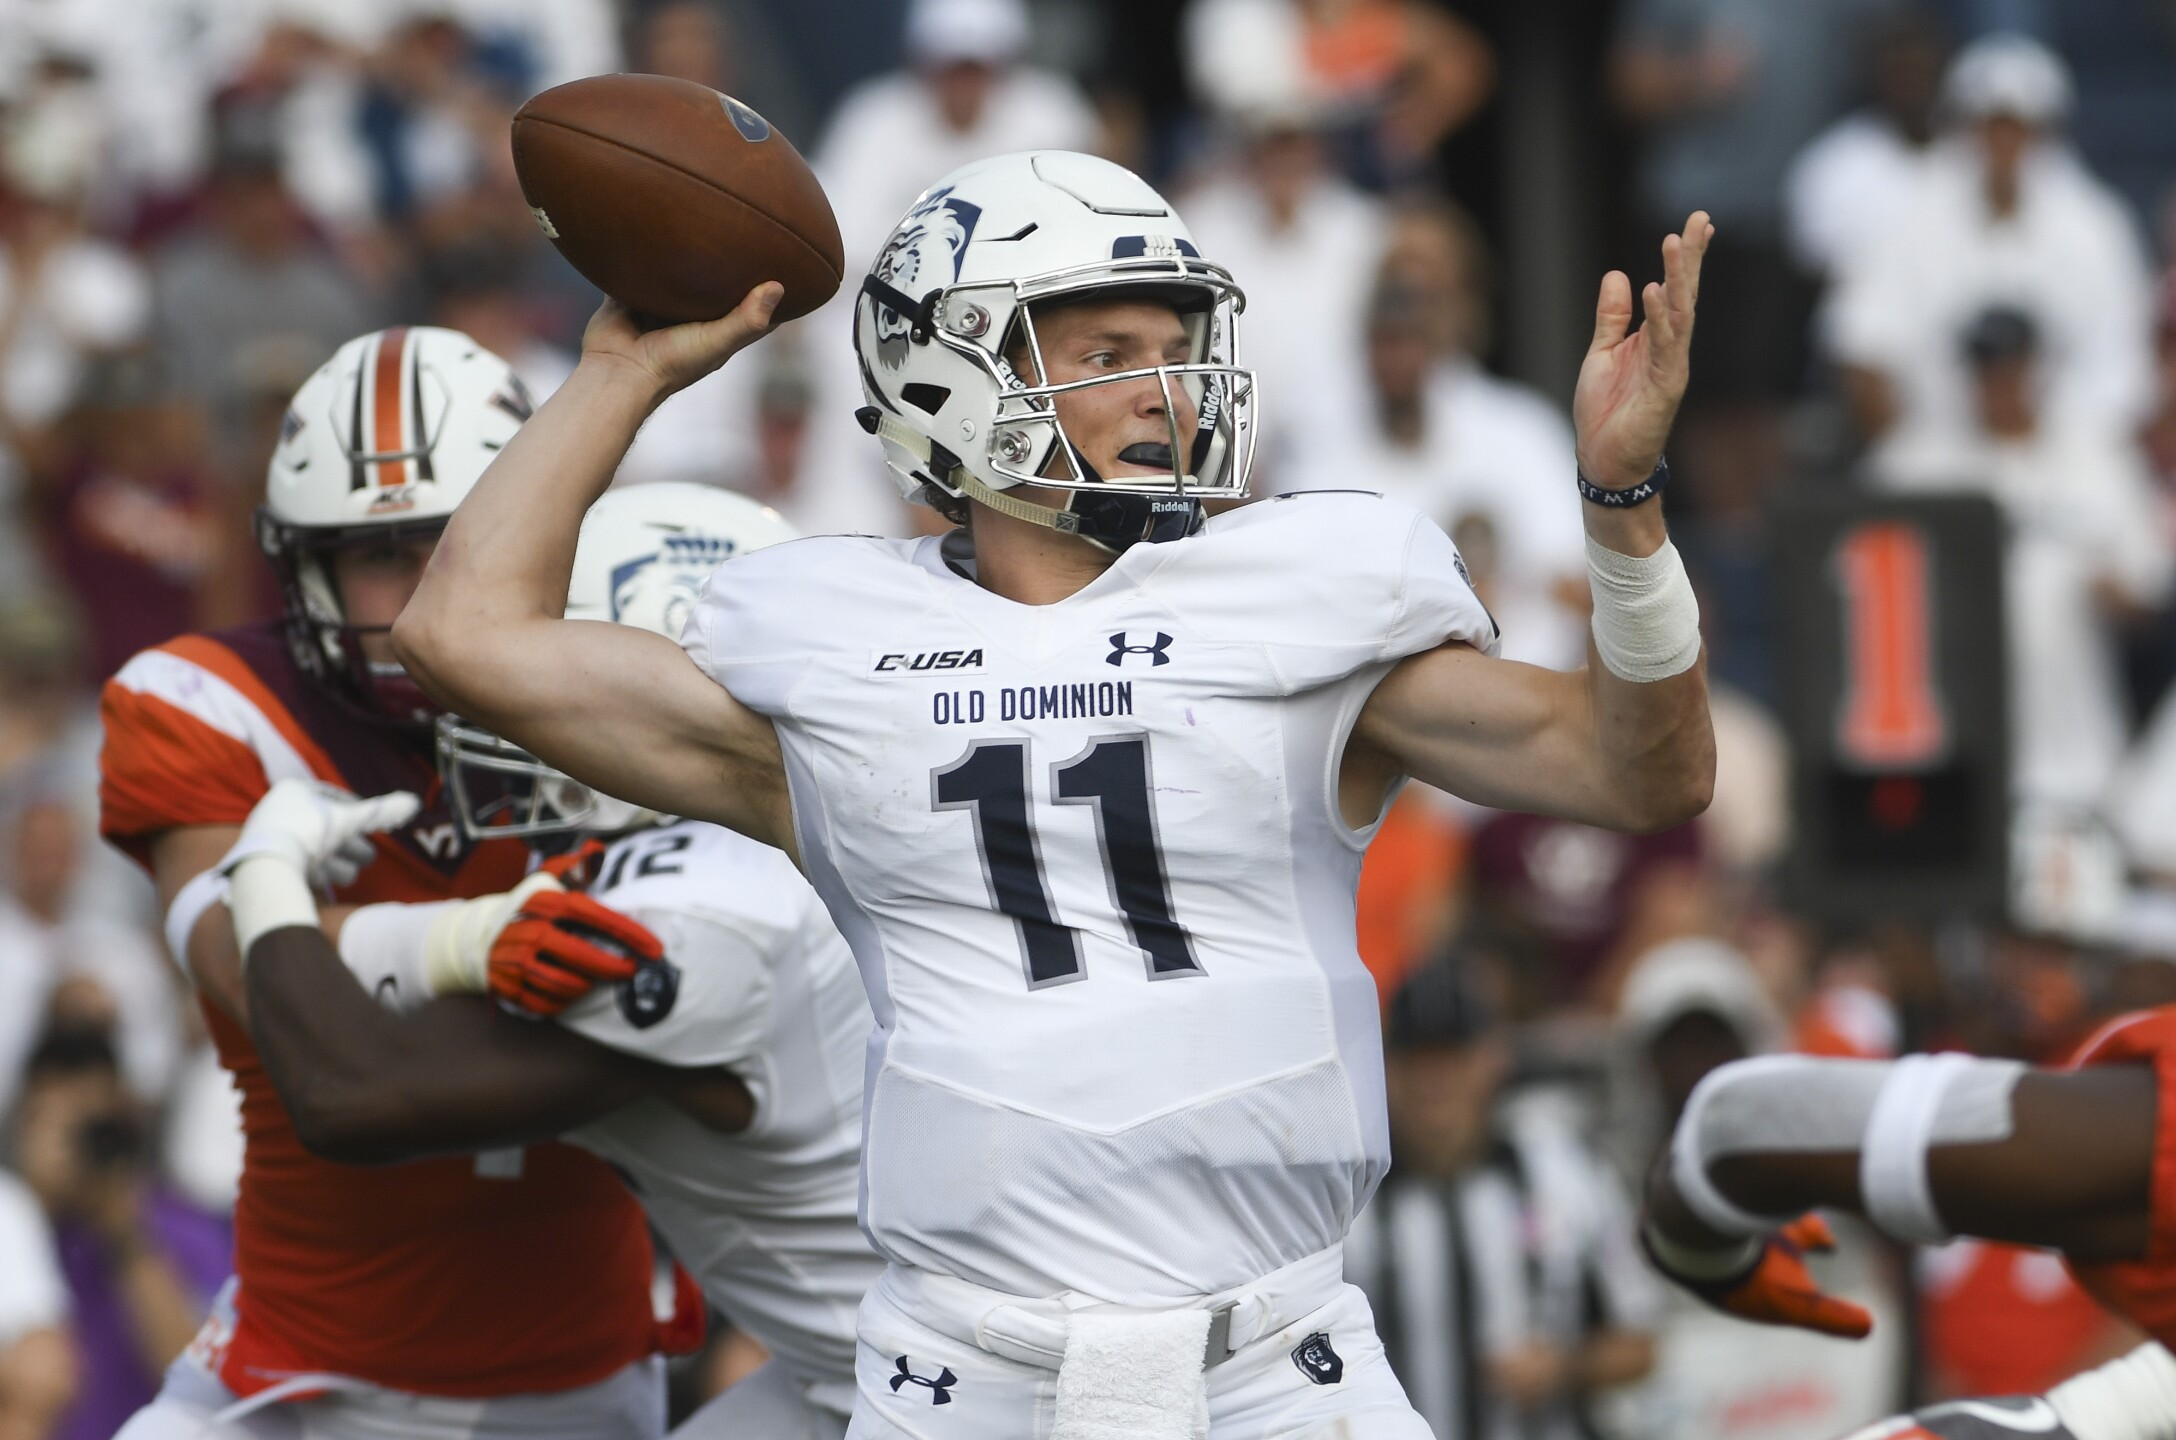 Photos: ODU beats Virginia Tech 49-35 in incredible upset: 'We just made history'